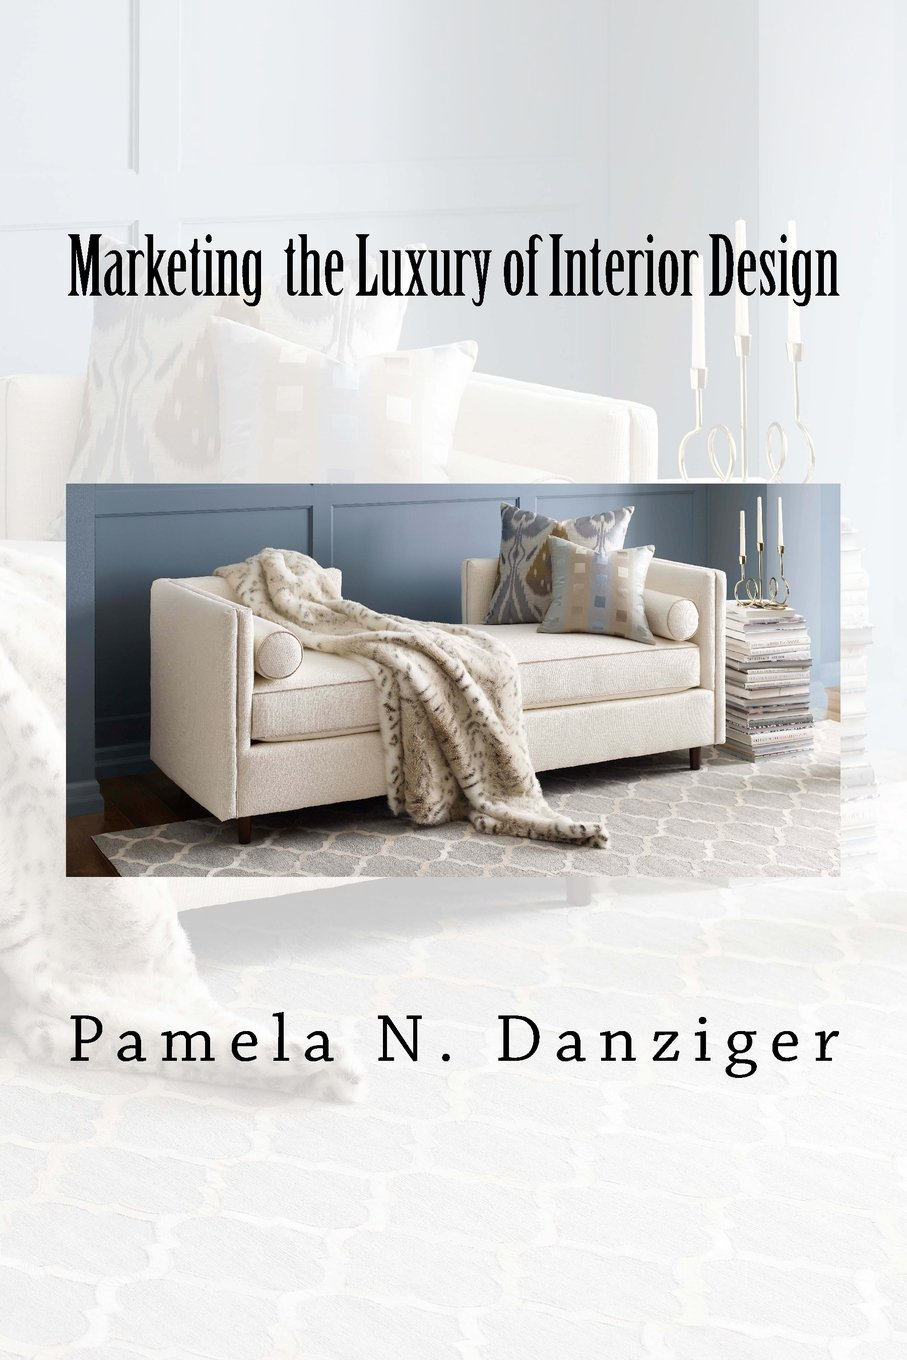 New book helps interior designers be as exceptional marketers as they are designers